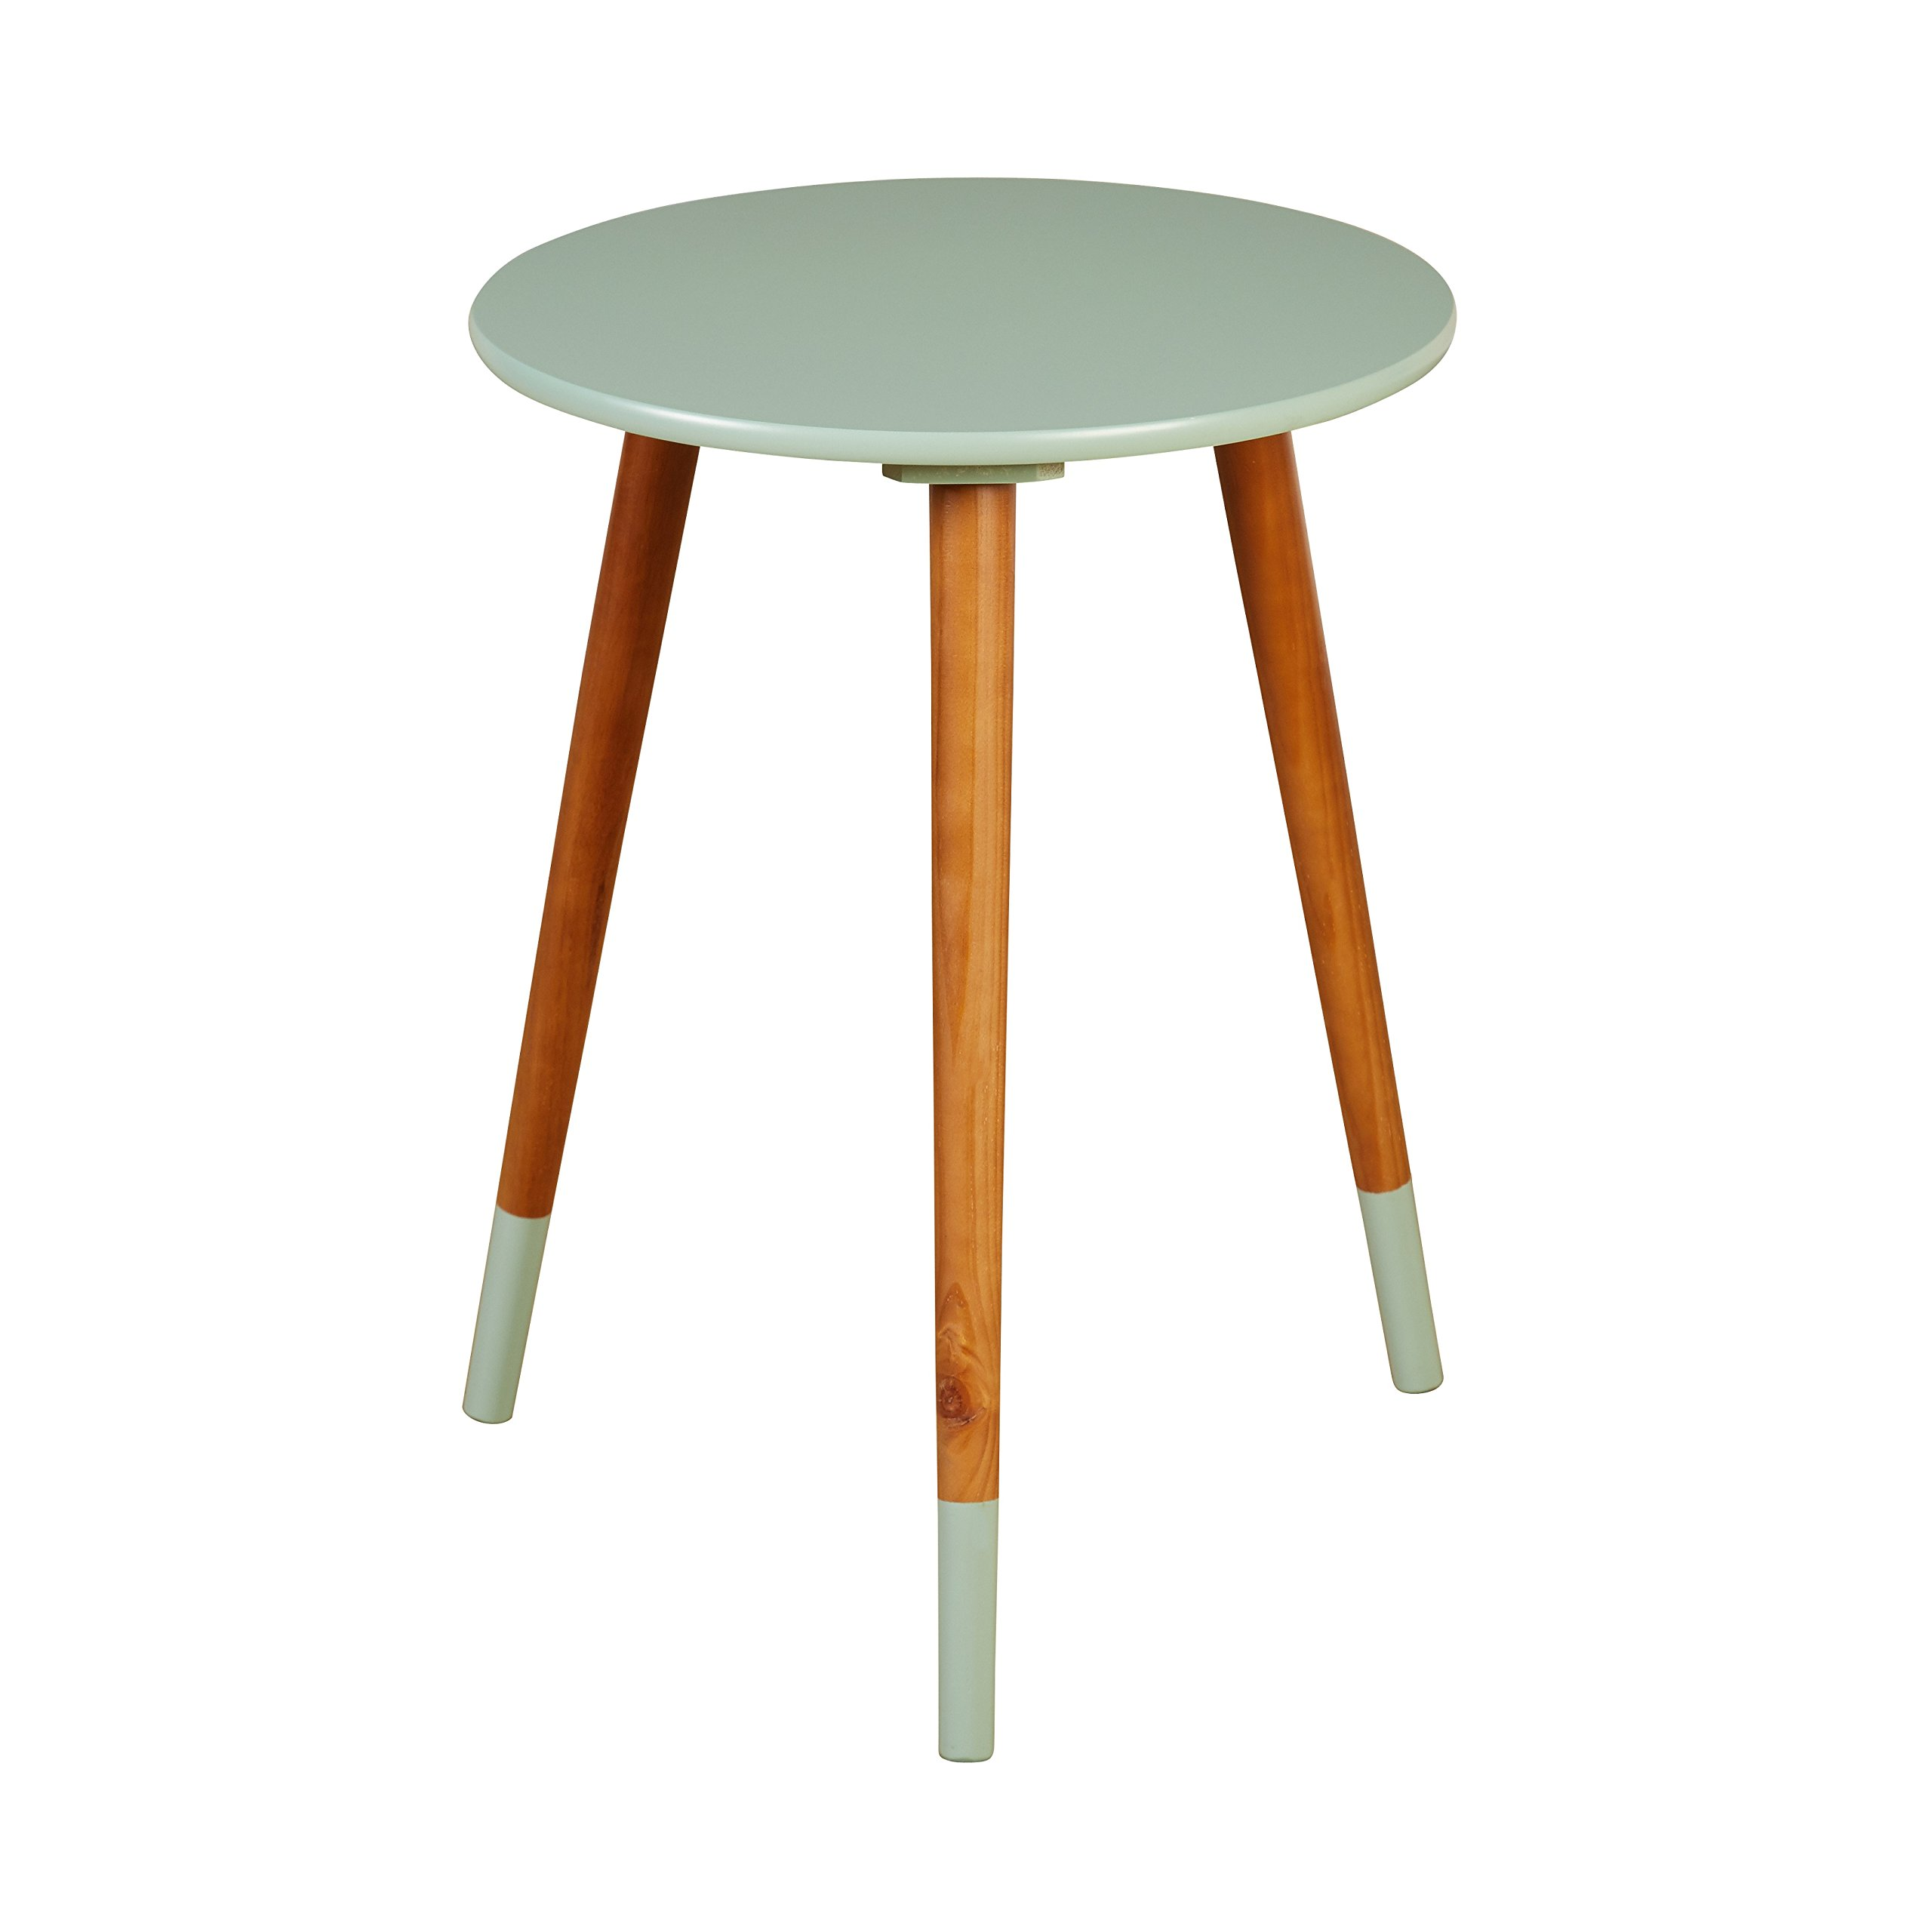 Target Marketing Systems Livia Collection Ultra Modern Round End Table With Splayed Leg Finish, Mint/Wood